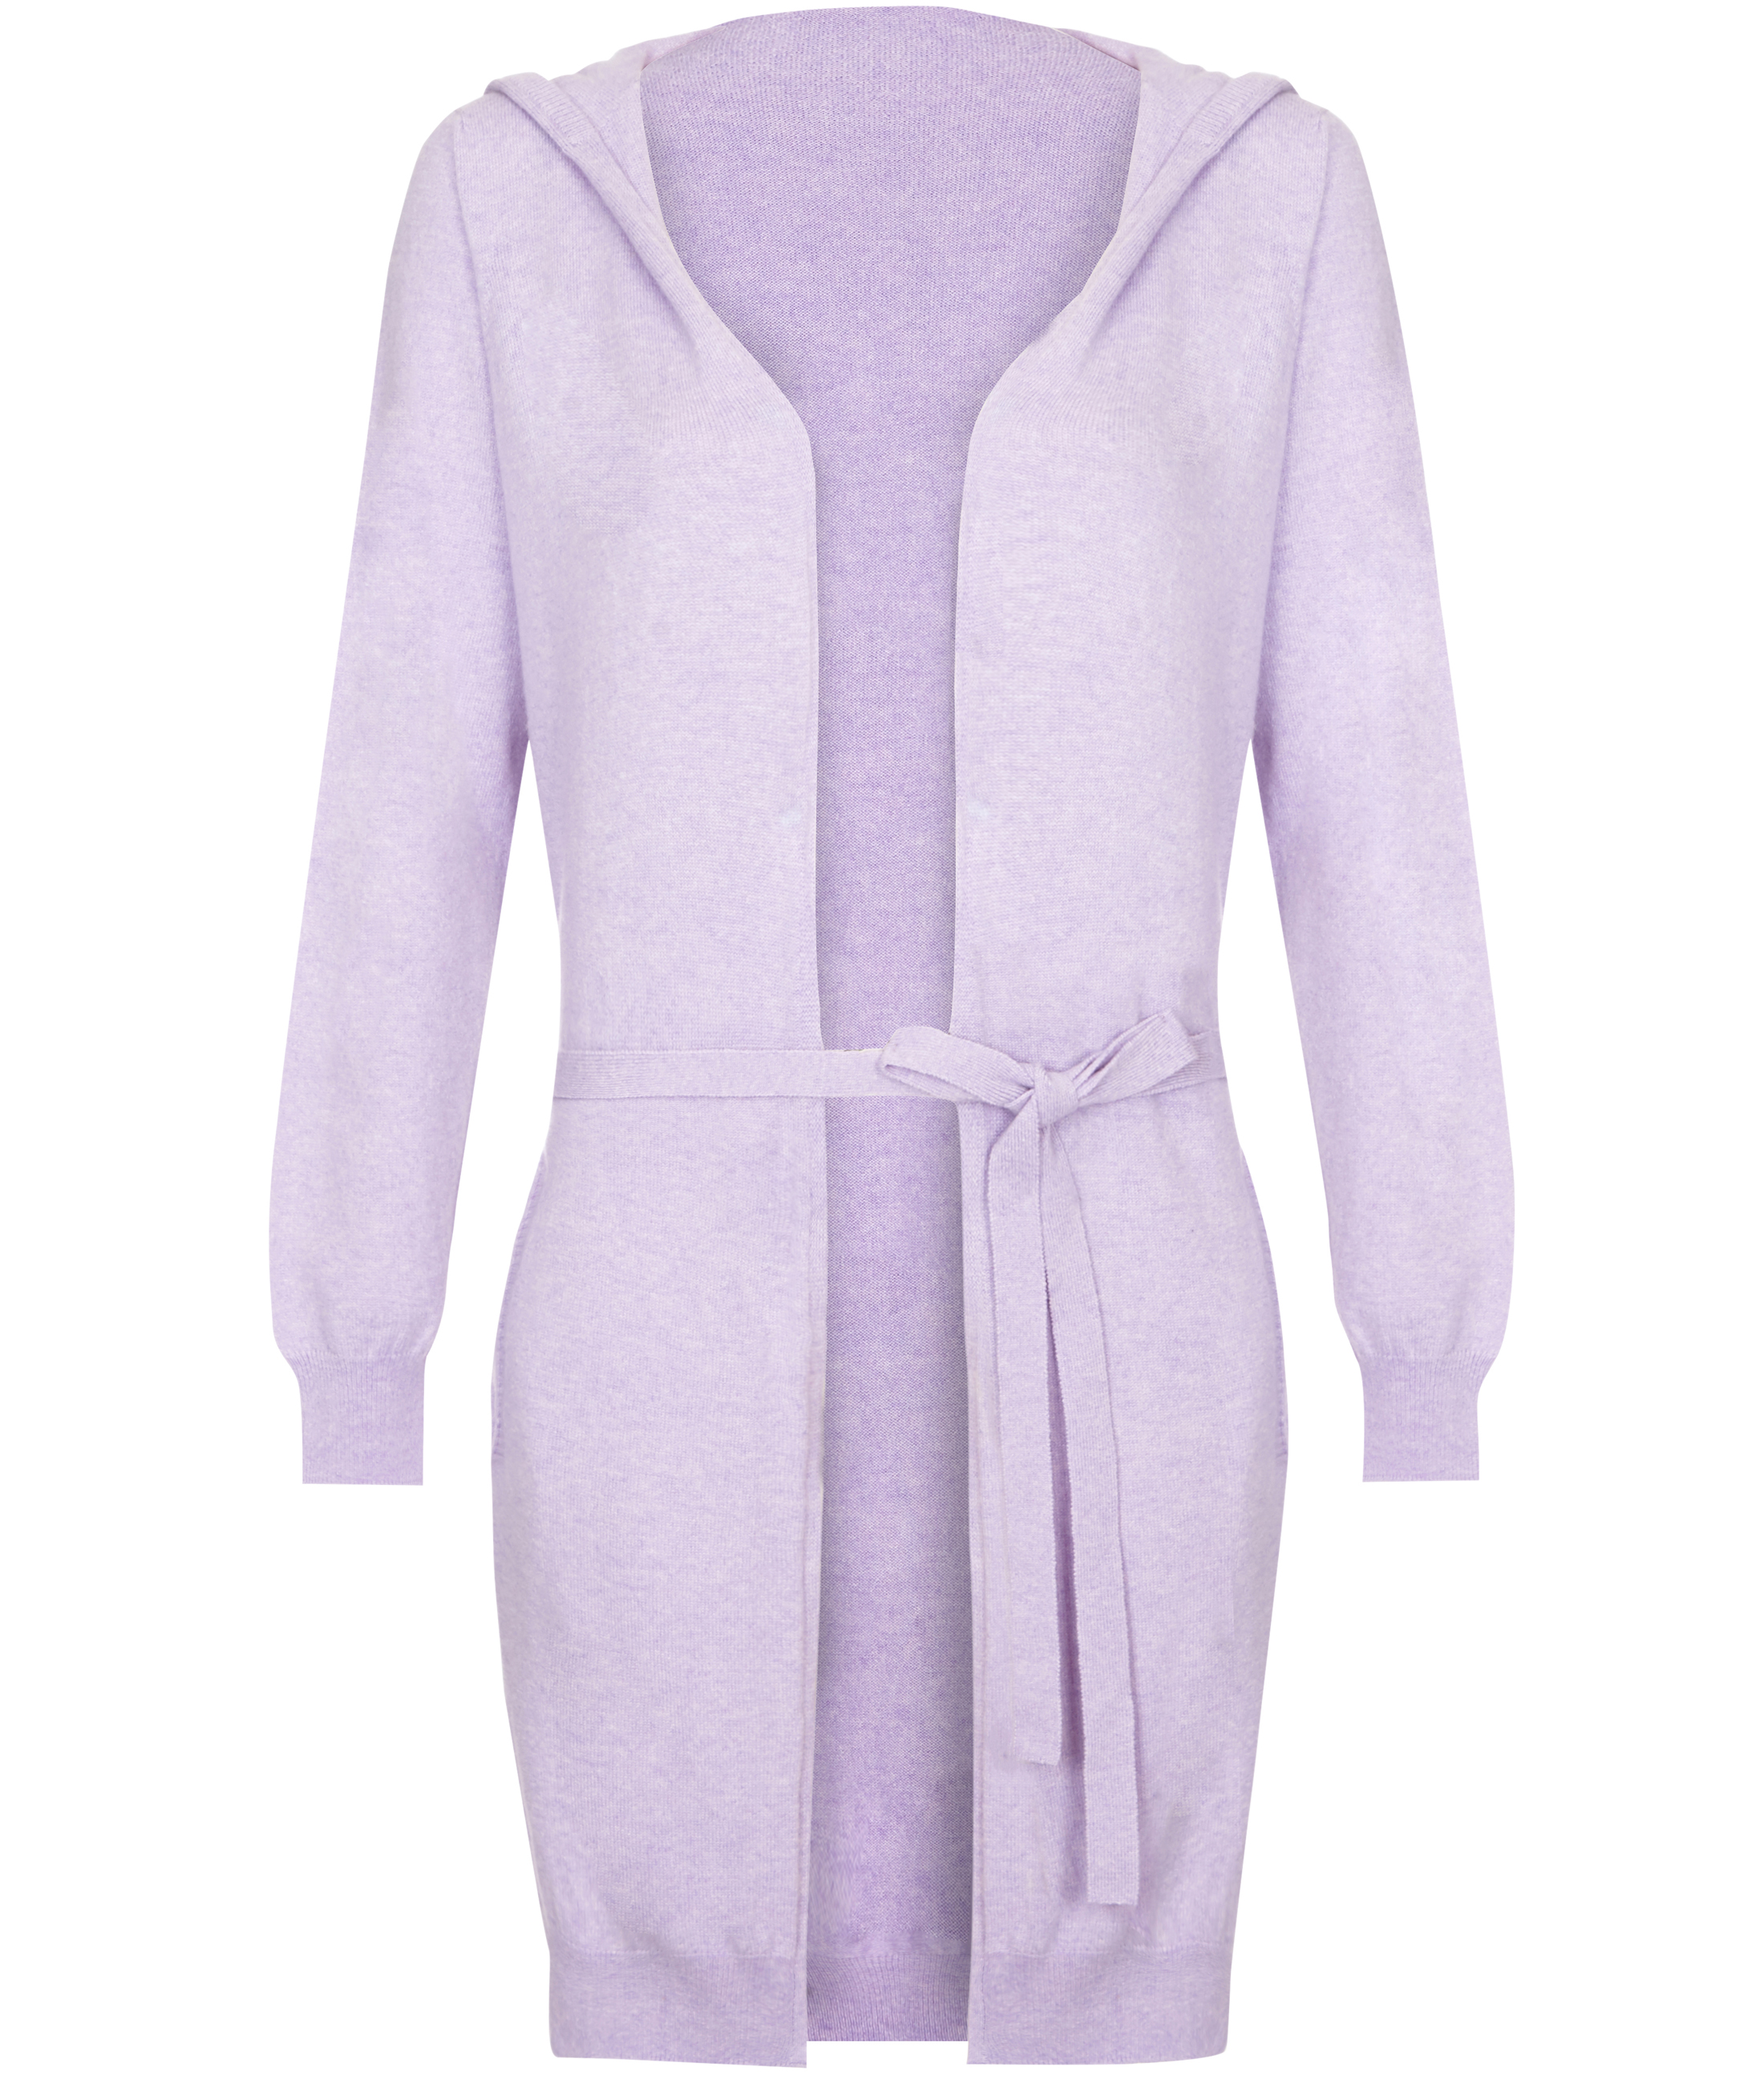 Lavender Hill Clothing Cashmere Cardigan